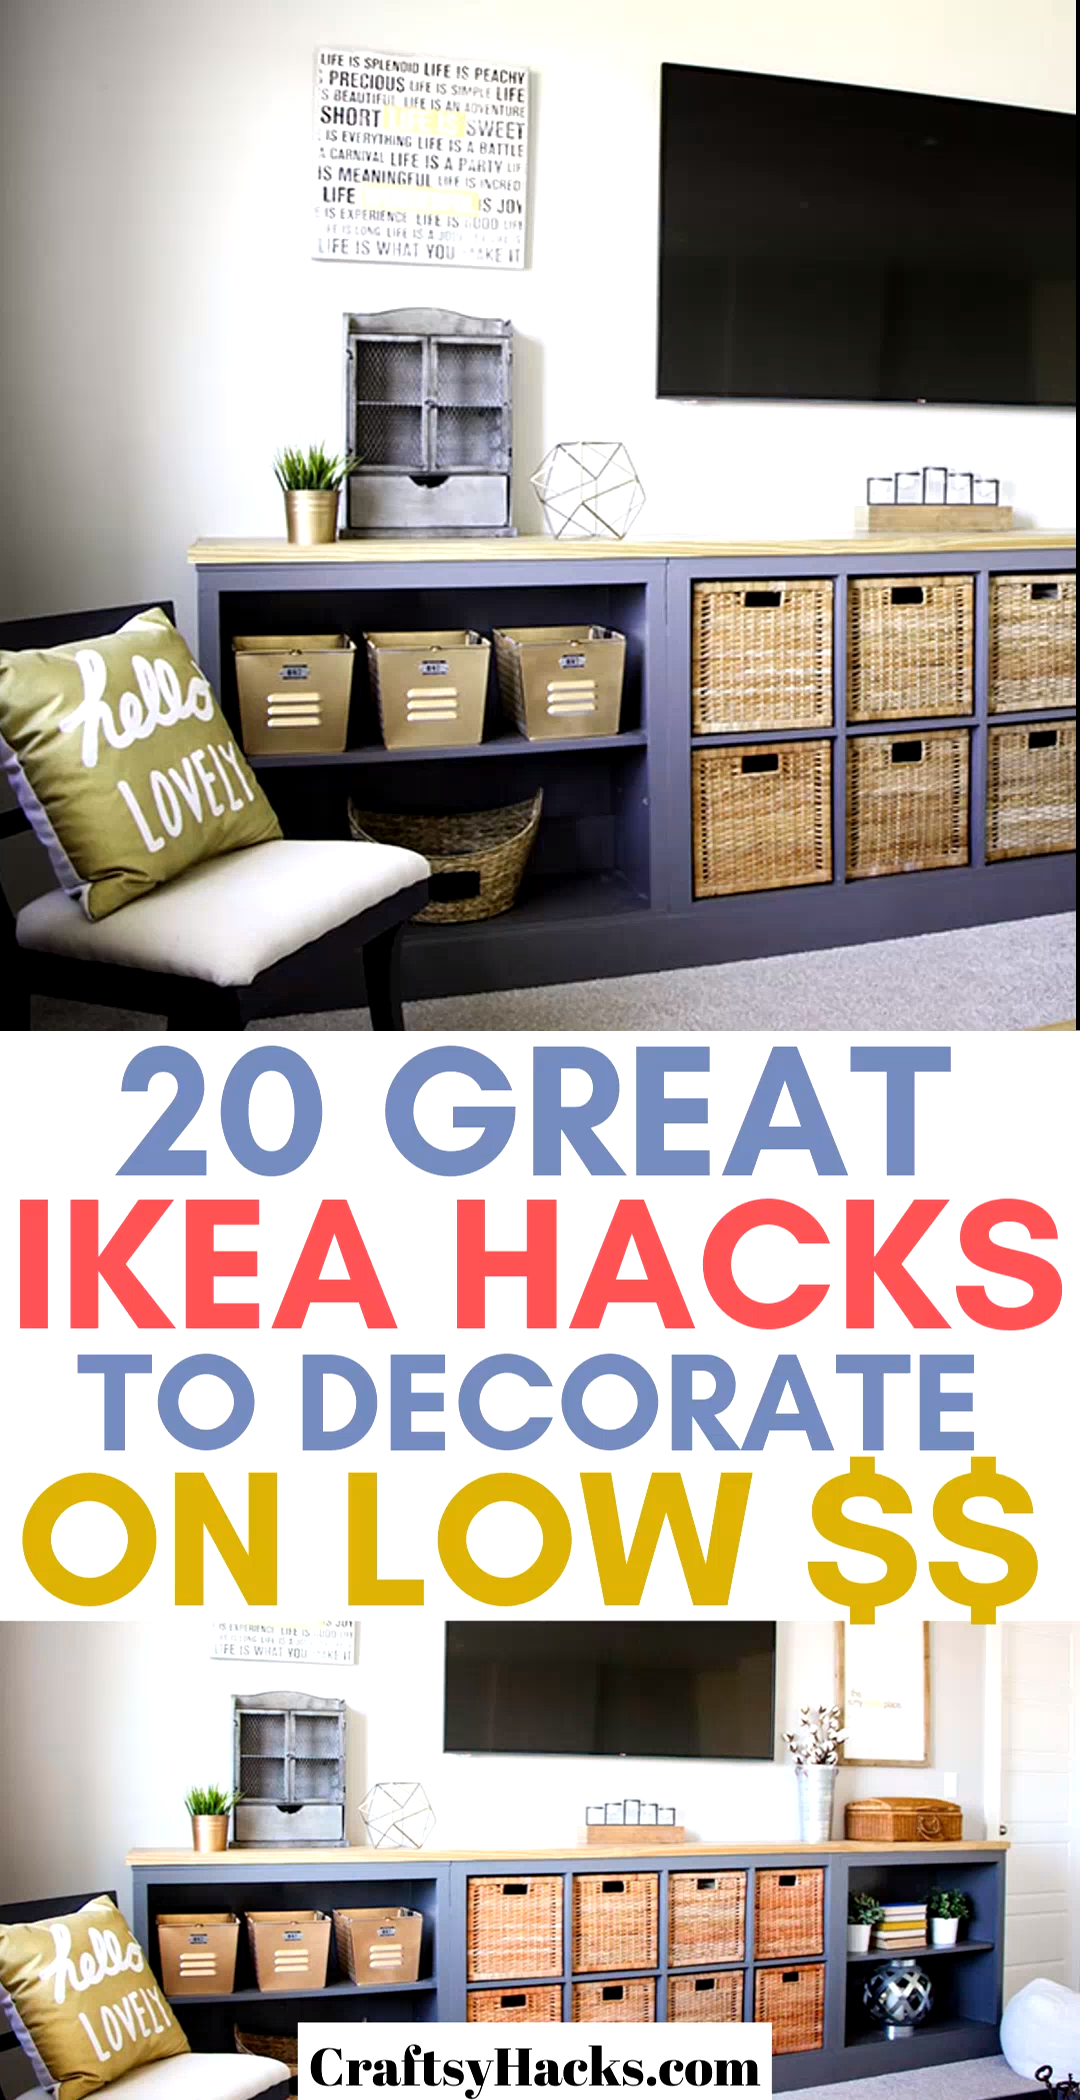 If you're on a low budget, these ikea hacks are just the very best to transform the way your home looks. Decorate on a low budget and have fun using ikea furniture to do that. #decorate #ikeahacks #ikea